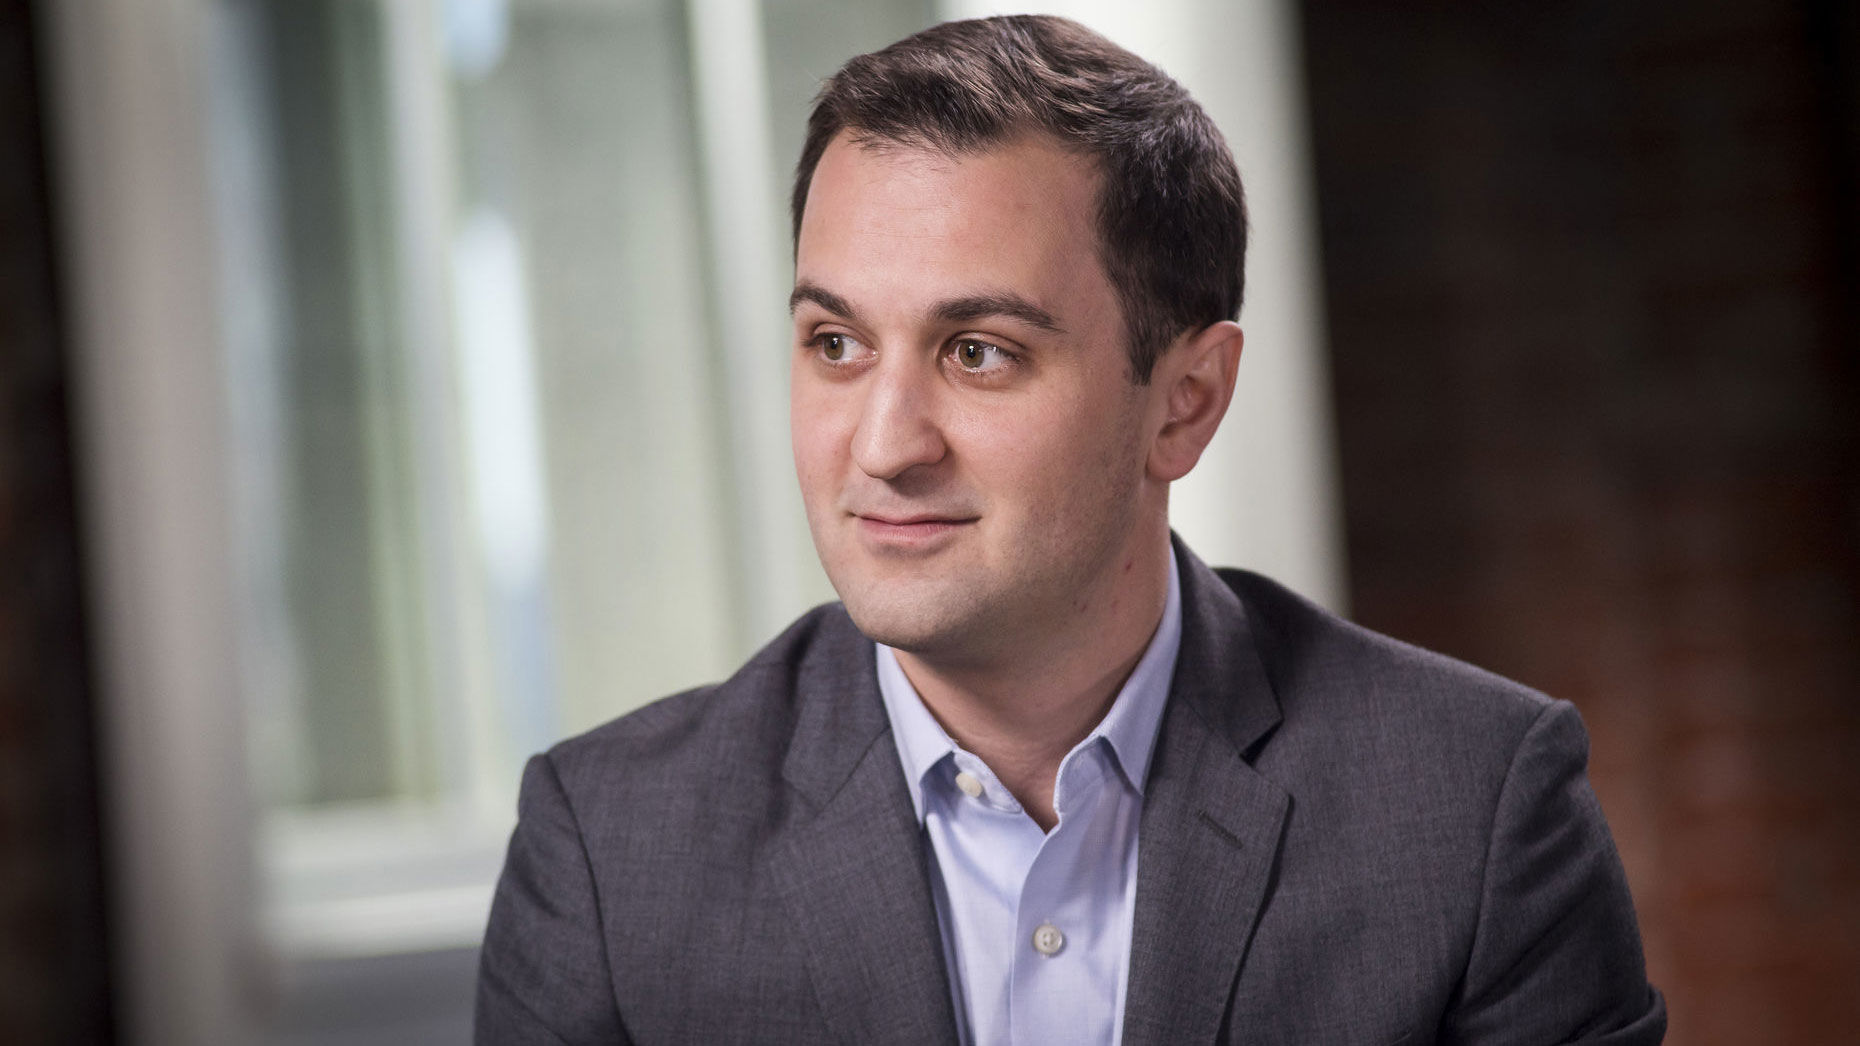 Lyft co-founder and president John Zimmer earlier this year. Photo by Bloomberg